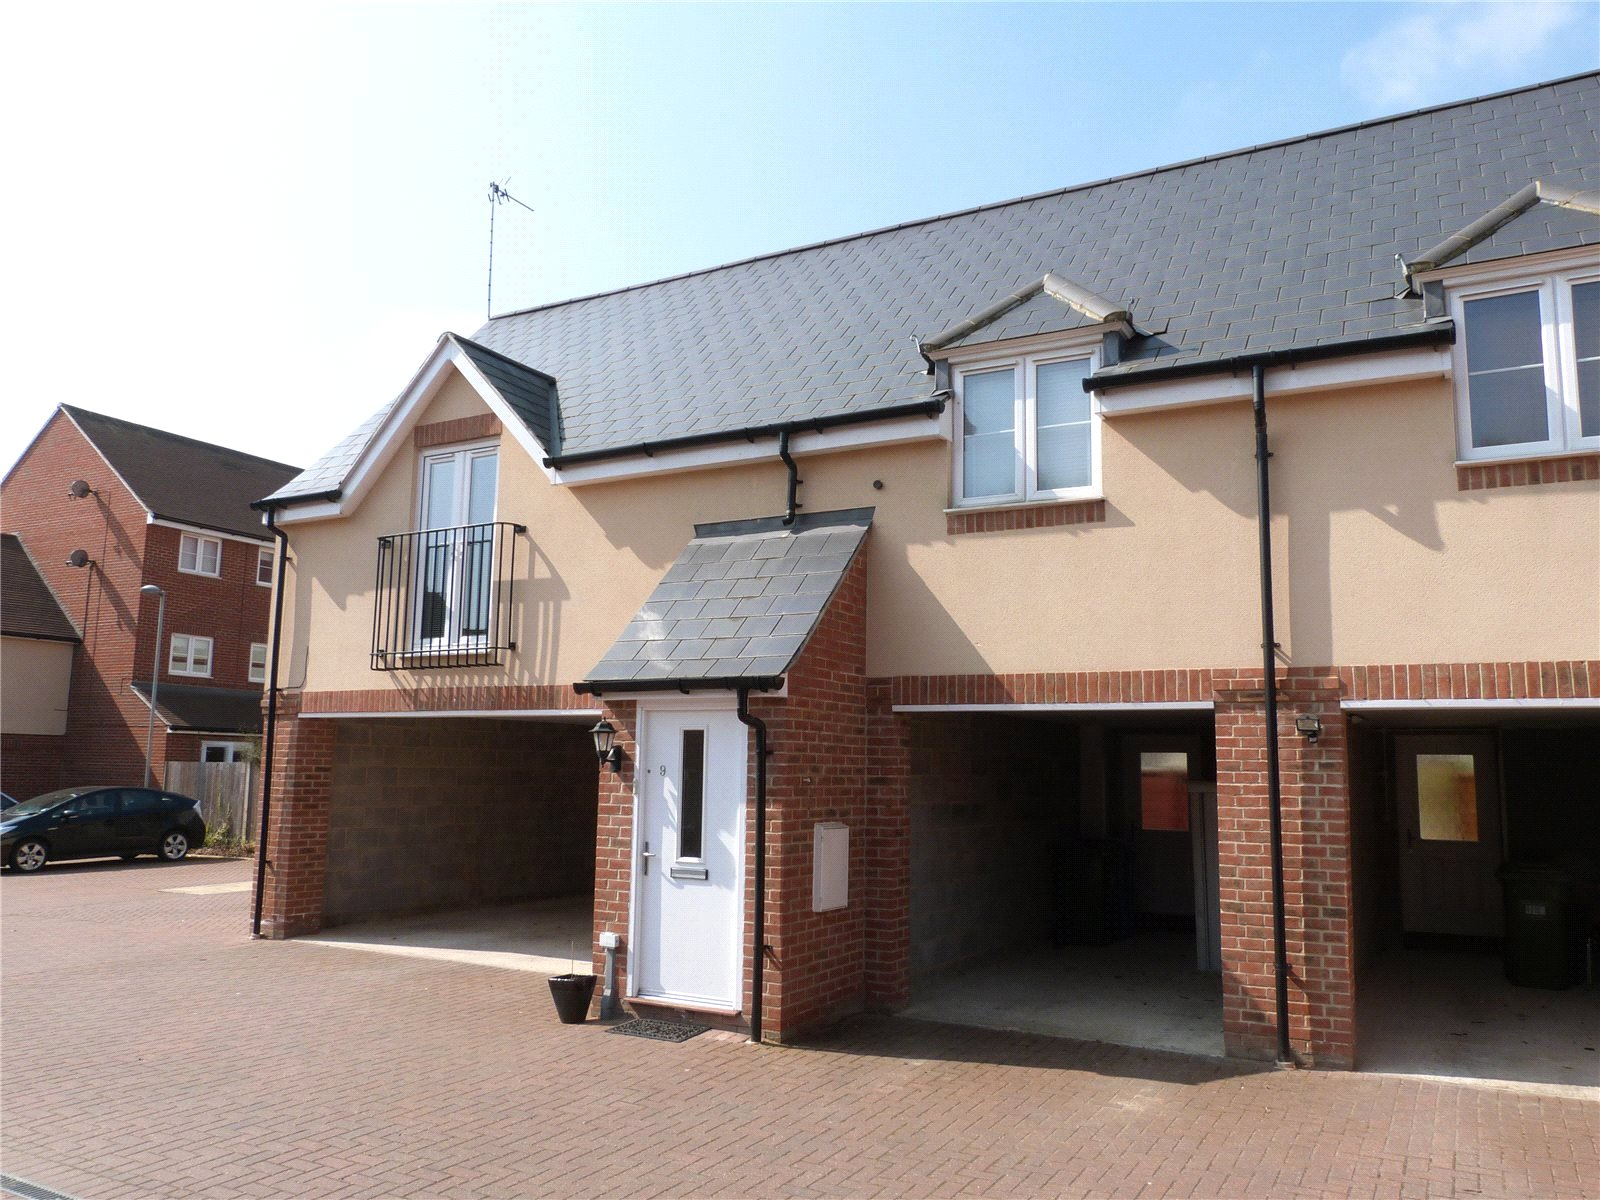 2 Bedrooms Maisonette Flat for sale in Blackcap Lane, Bracknell, Berkshire, RG12